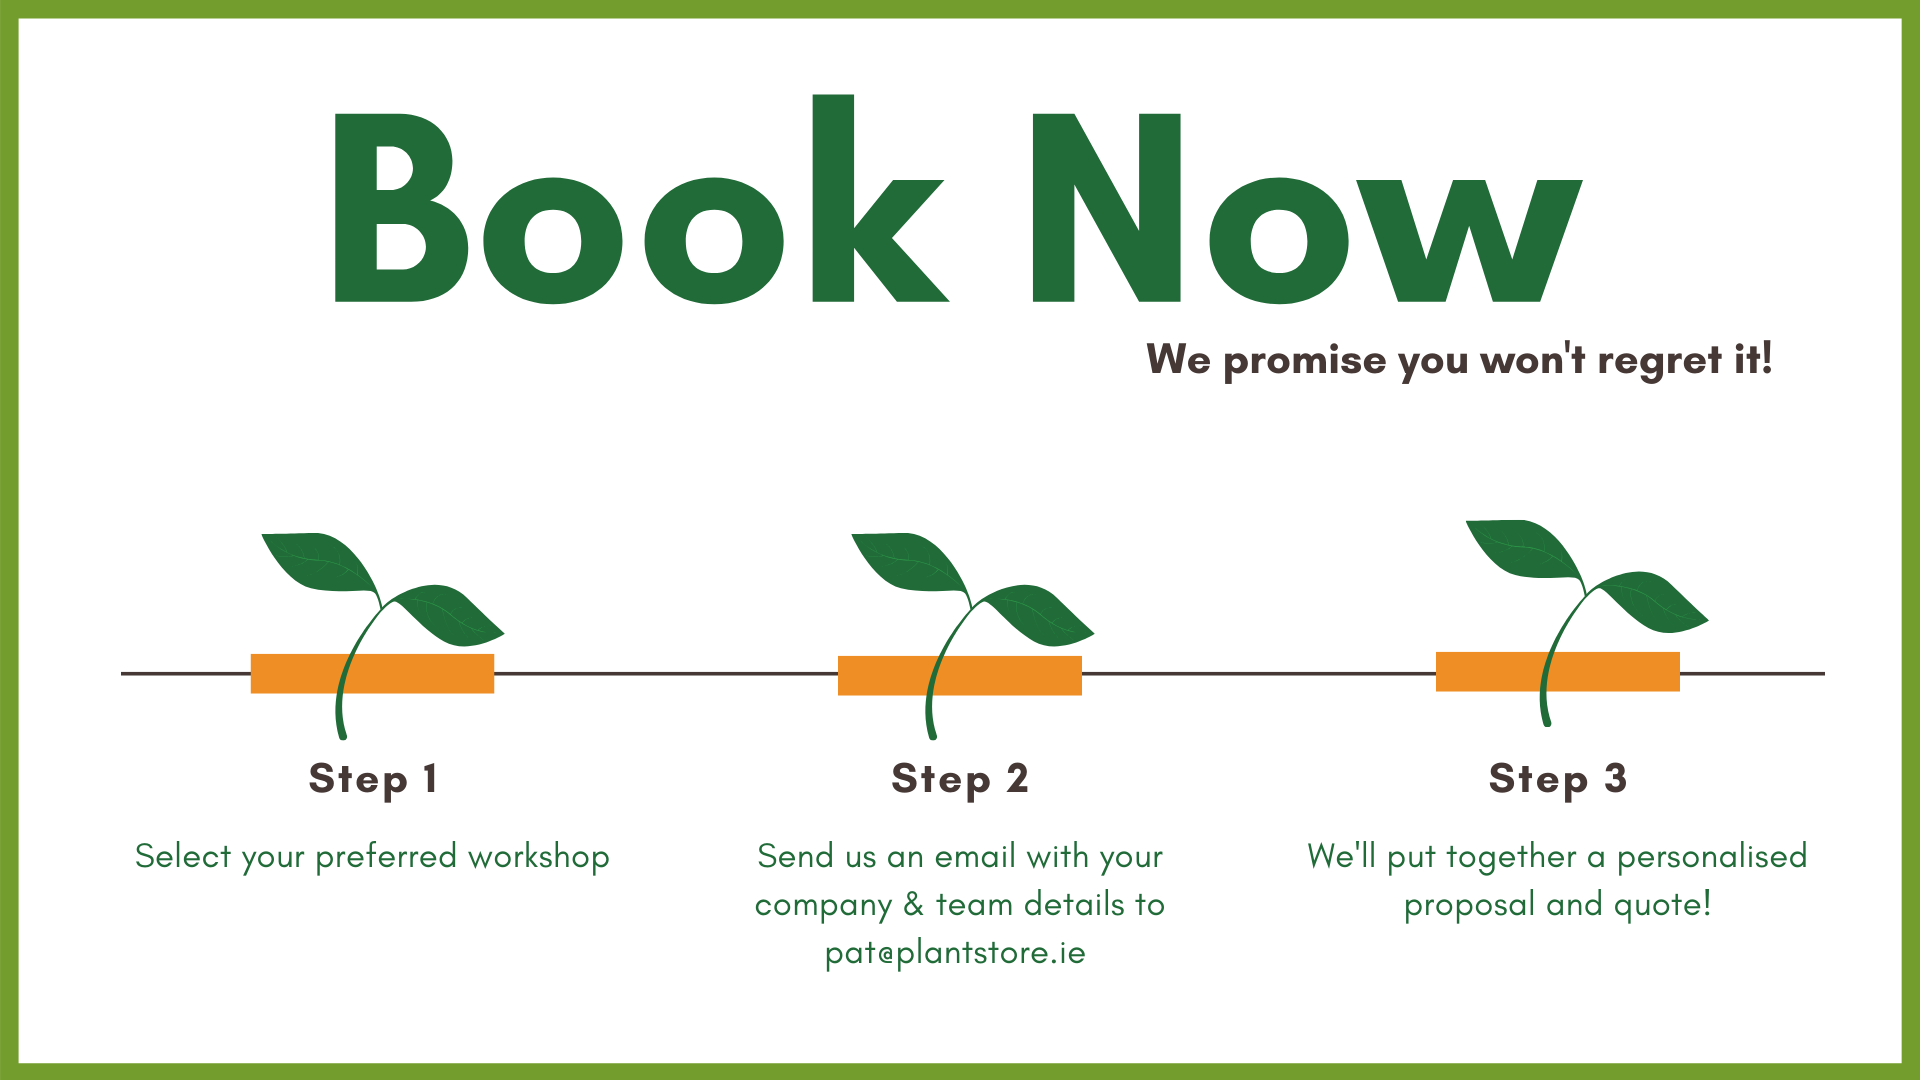 How to book a PlantStore Ireland Team Building Workshop